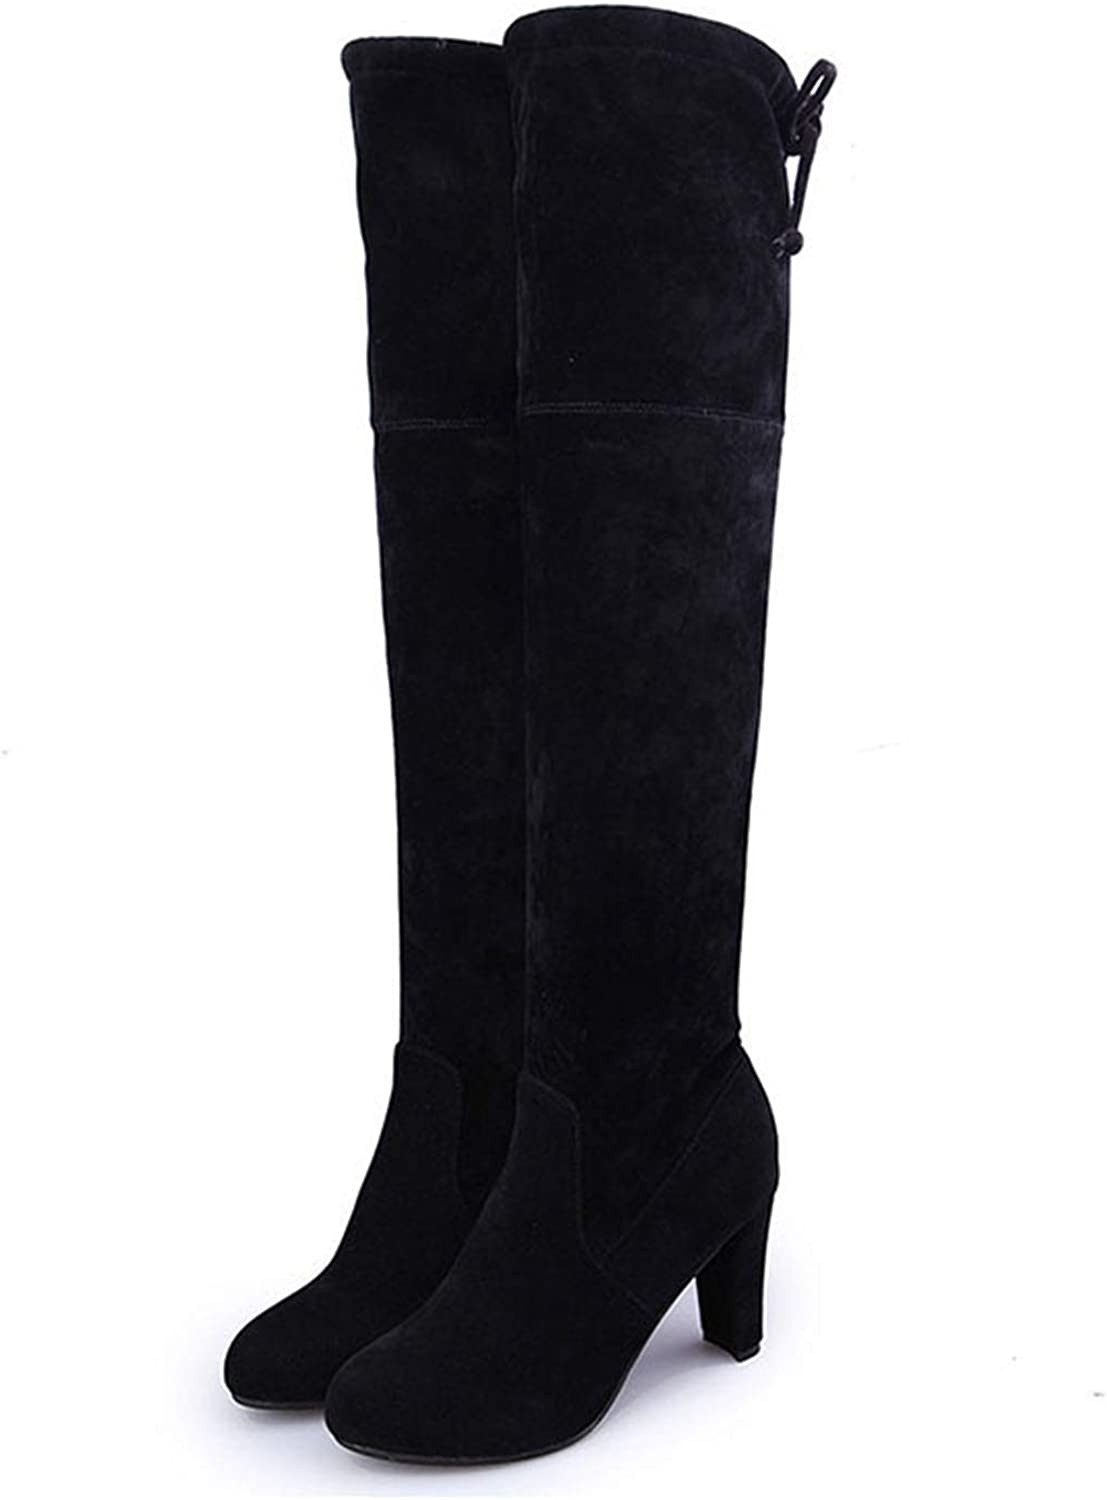 Female Winter Thigh High Boots Leather High Heels Women Over The Knee shoes